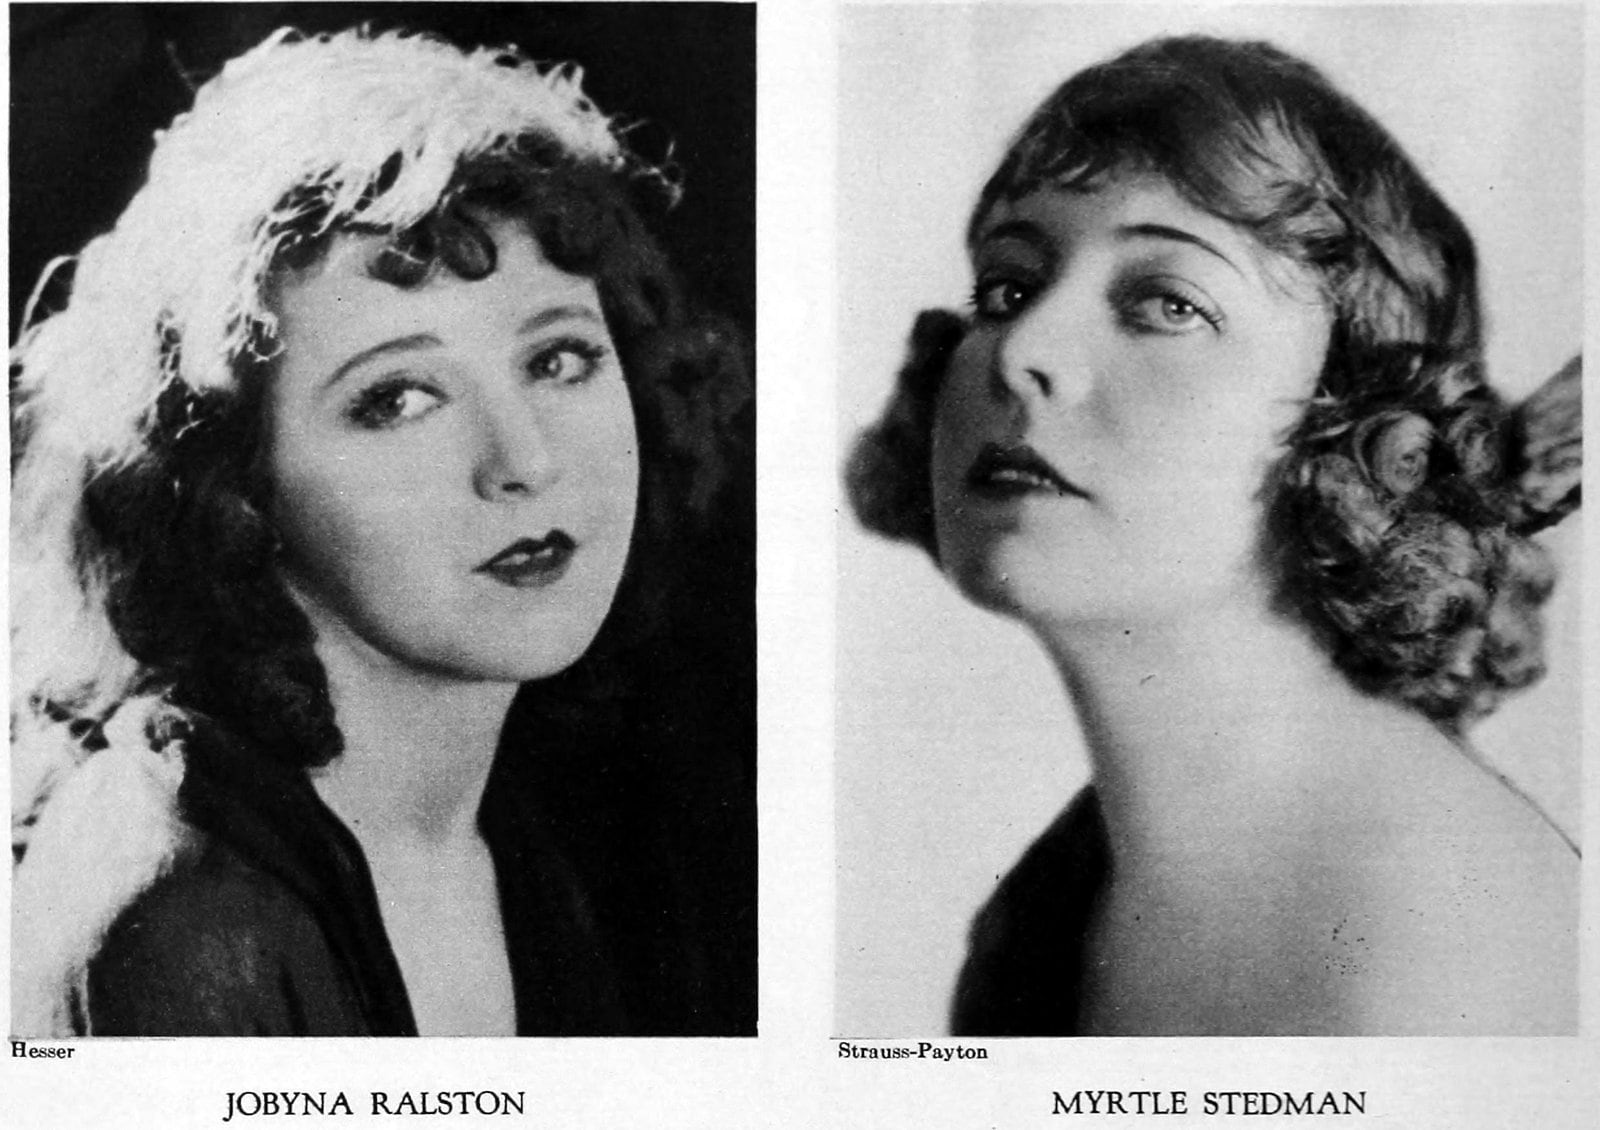 Vintage 1920s hairstyles for women - actresses Jobyna Ralston and Myrtle Steadman